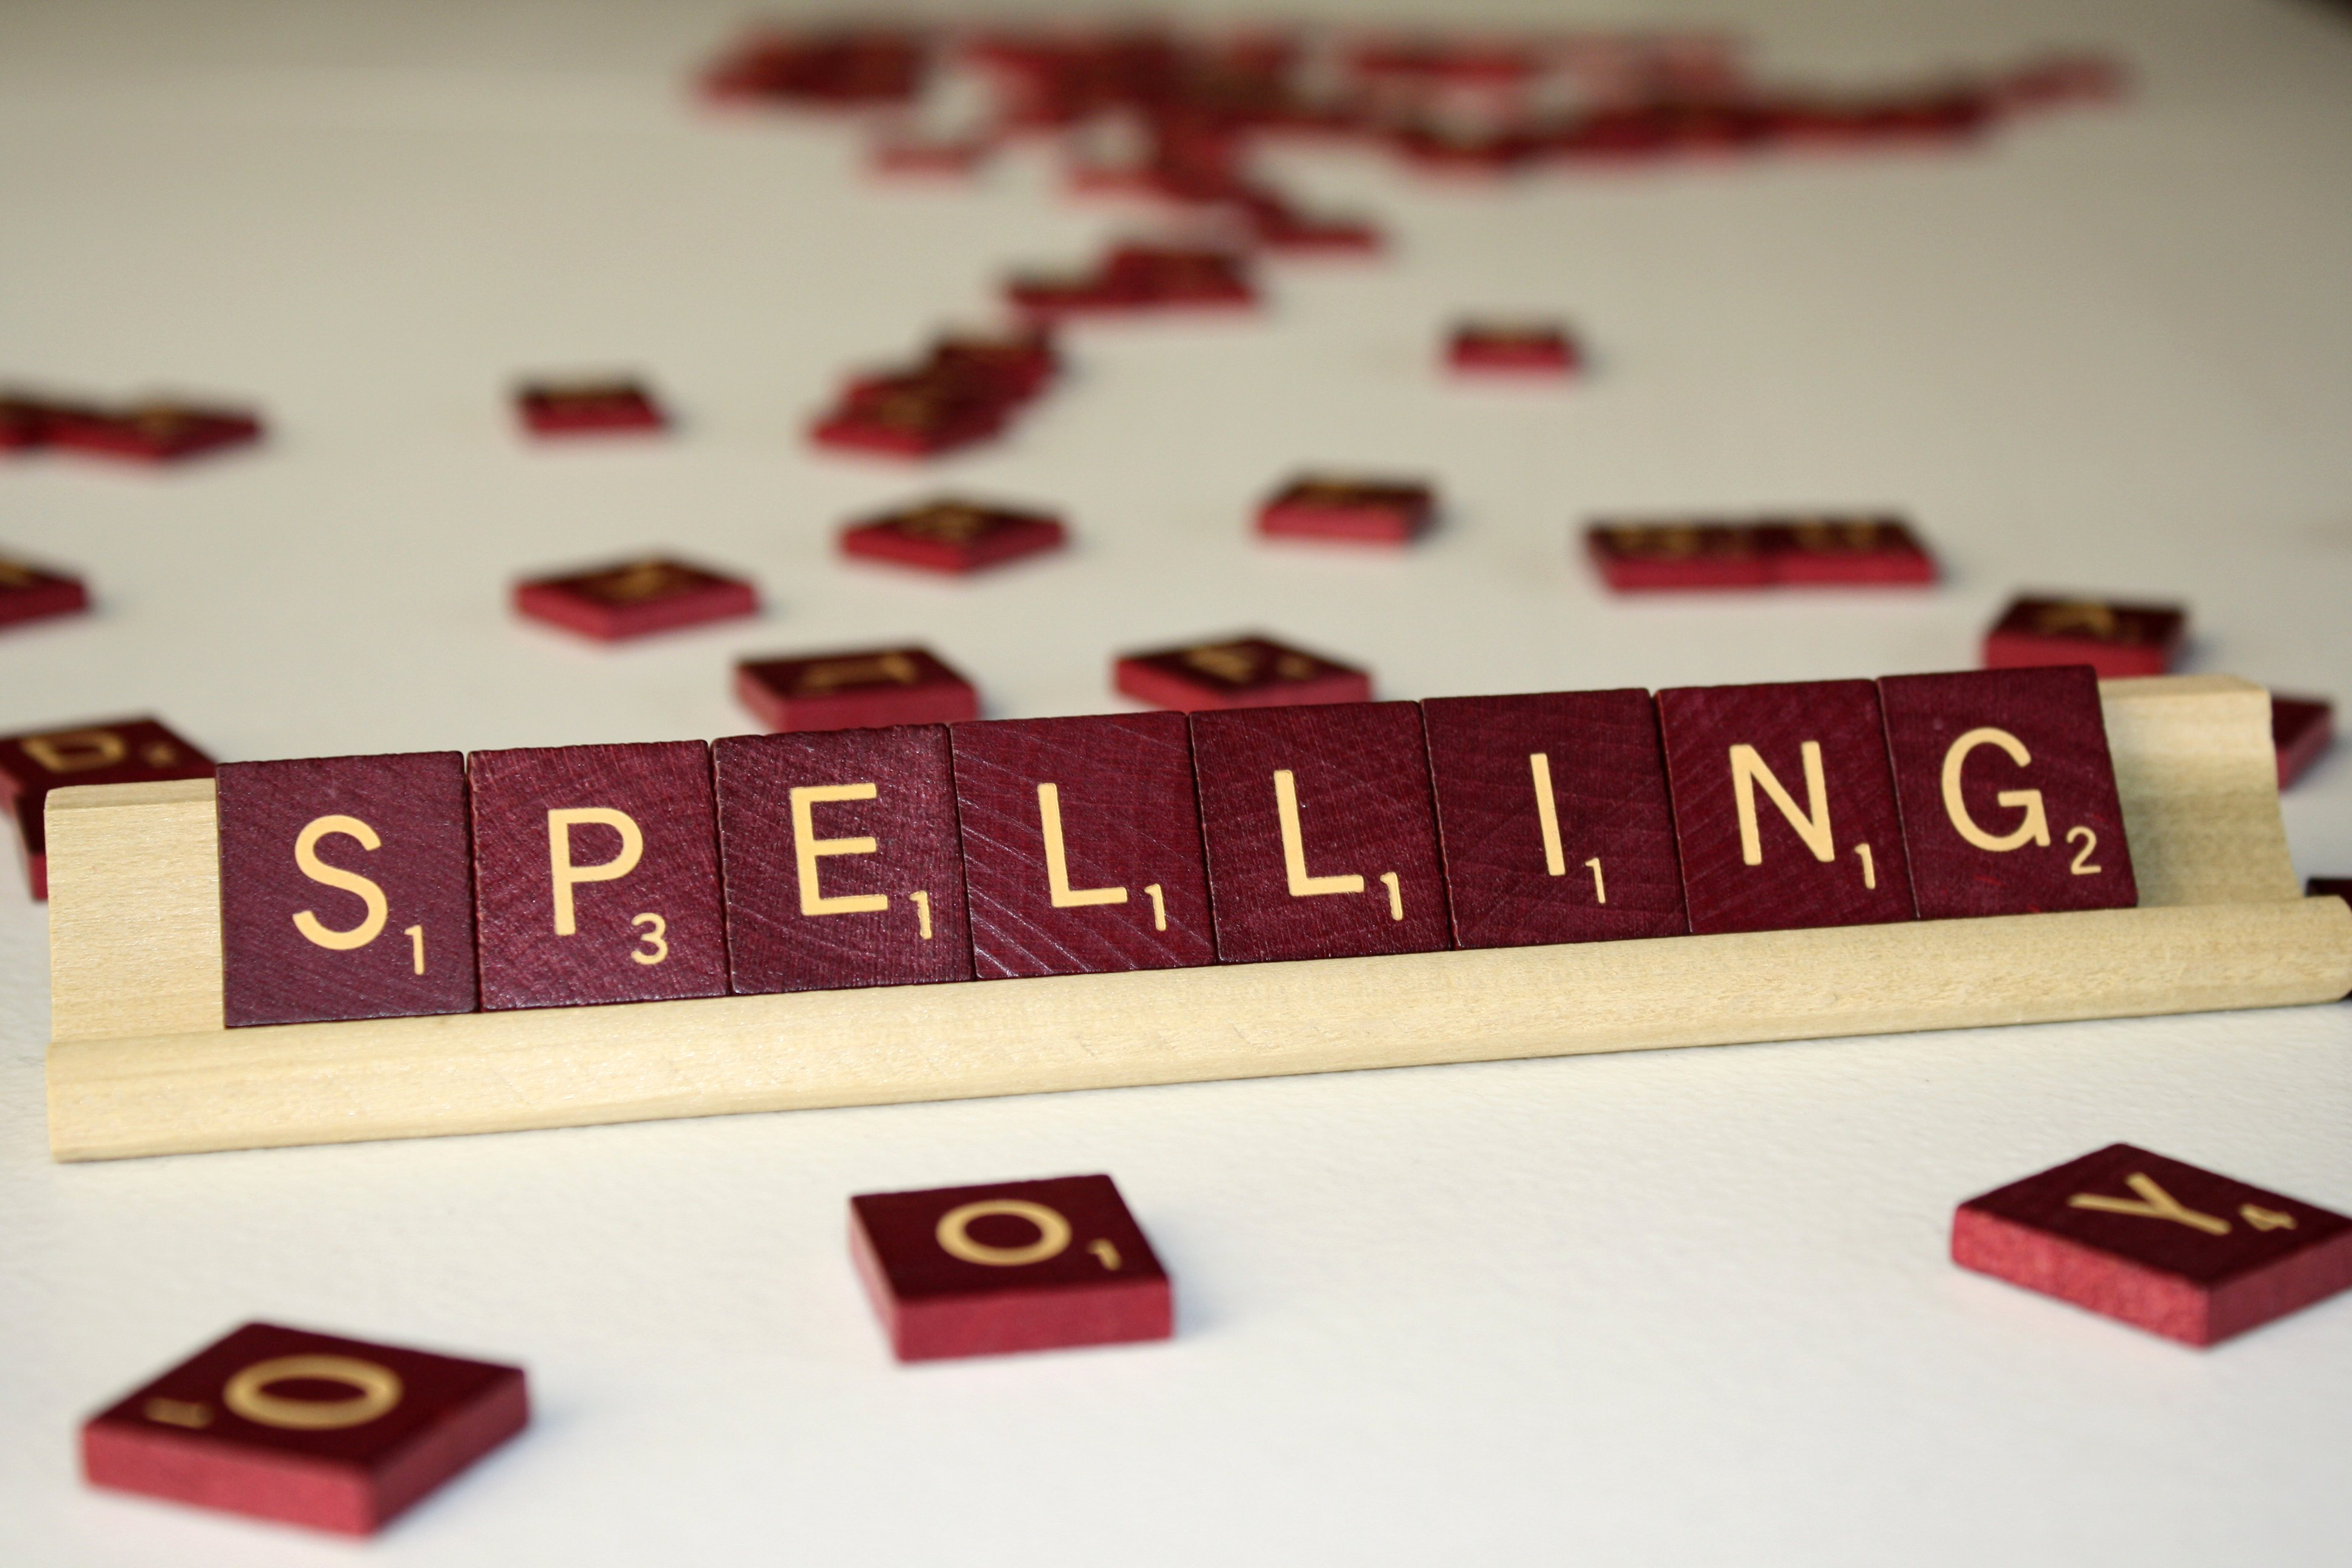 Spelling Picture | Free Photograph | Photos Public Domain